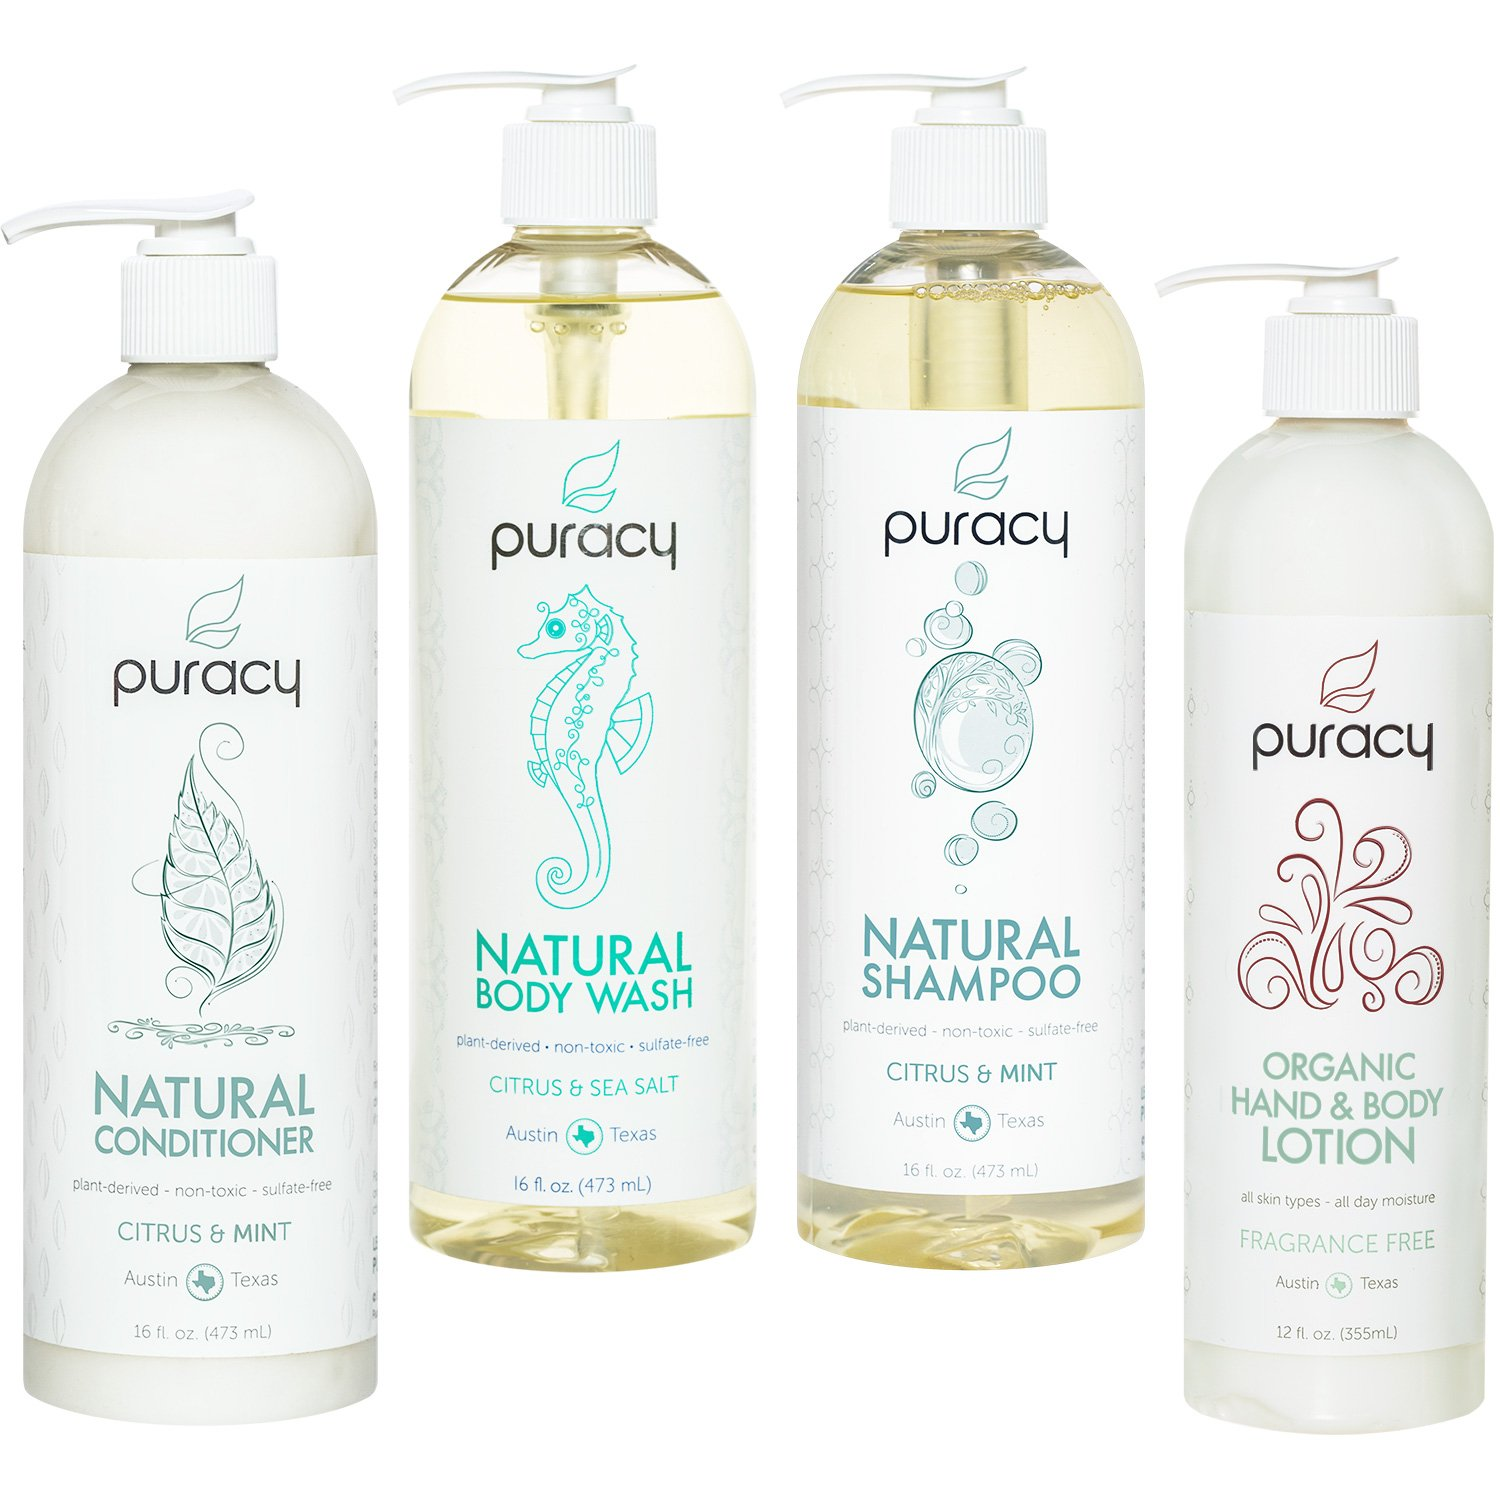 Puracy Organic Hair & Skin Care Set, Natural Body Wash, Salon-Tested Shampoo and Conditioner, Hypoallergenic Moisturizing Lotion, Sulfate and Paraben-Free (Pack of 4) PPCB4-1